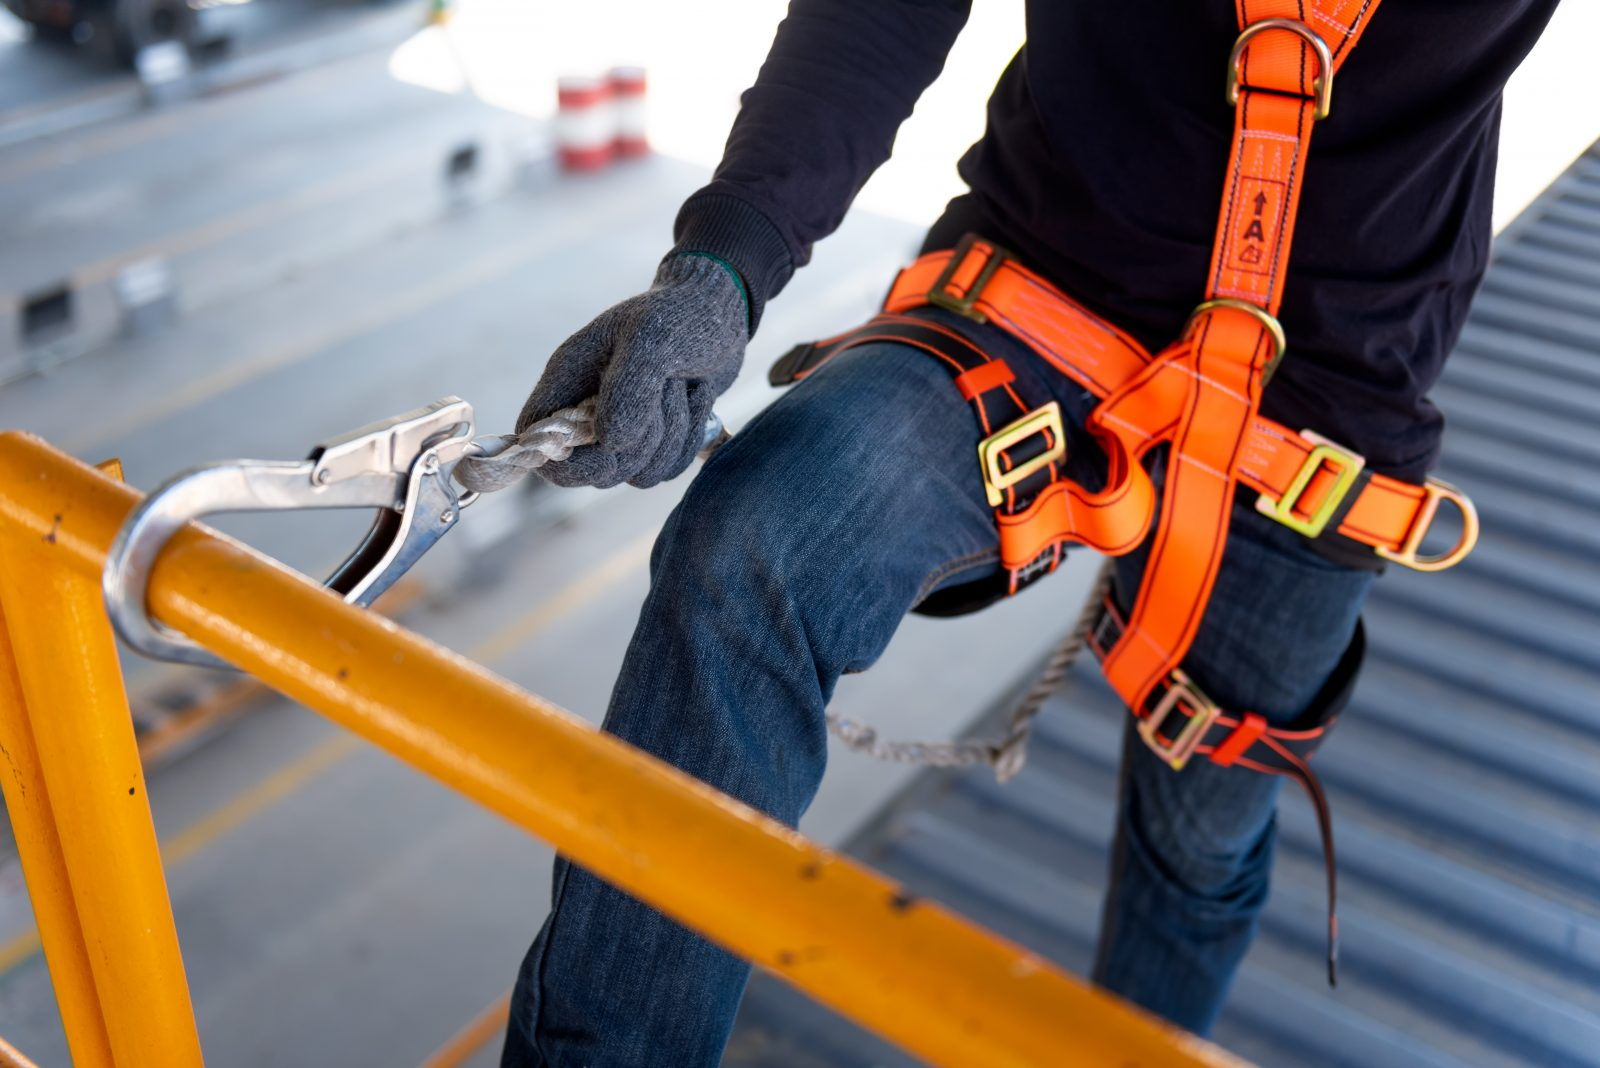 How to Choose a Fall Protection Harness in 11 Easy Steps